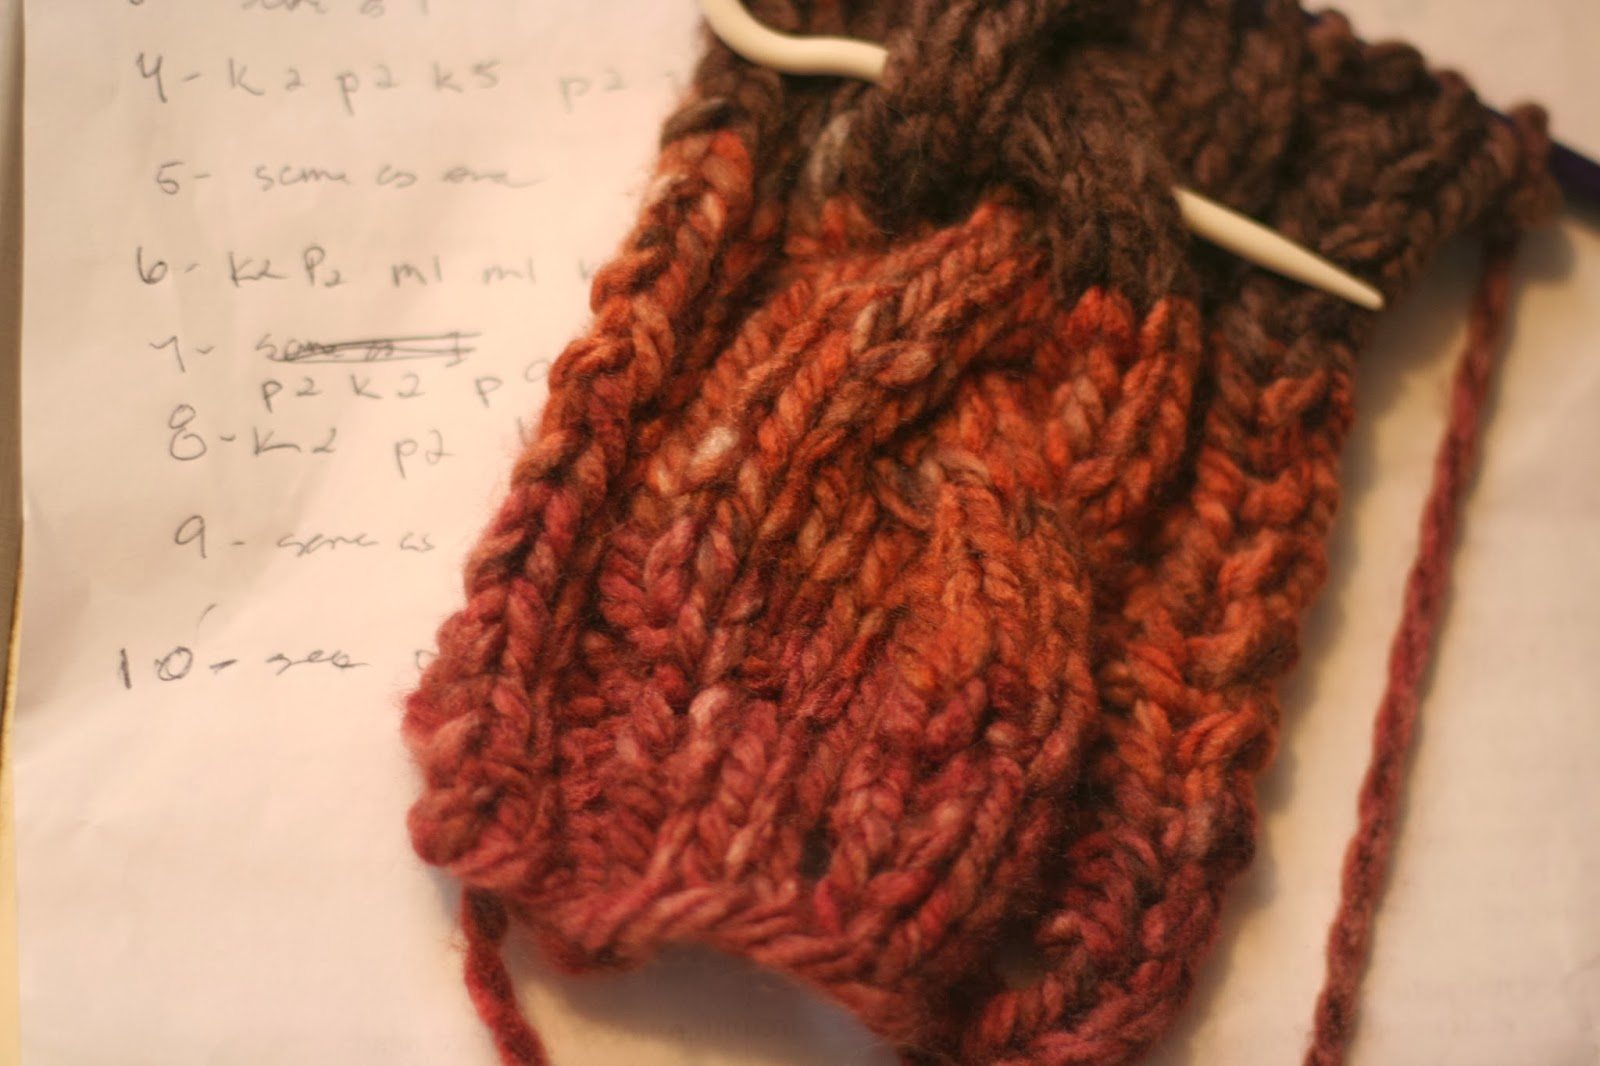 making changes to the cable headband pattern, and more shortbread